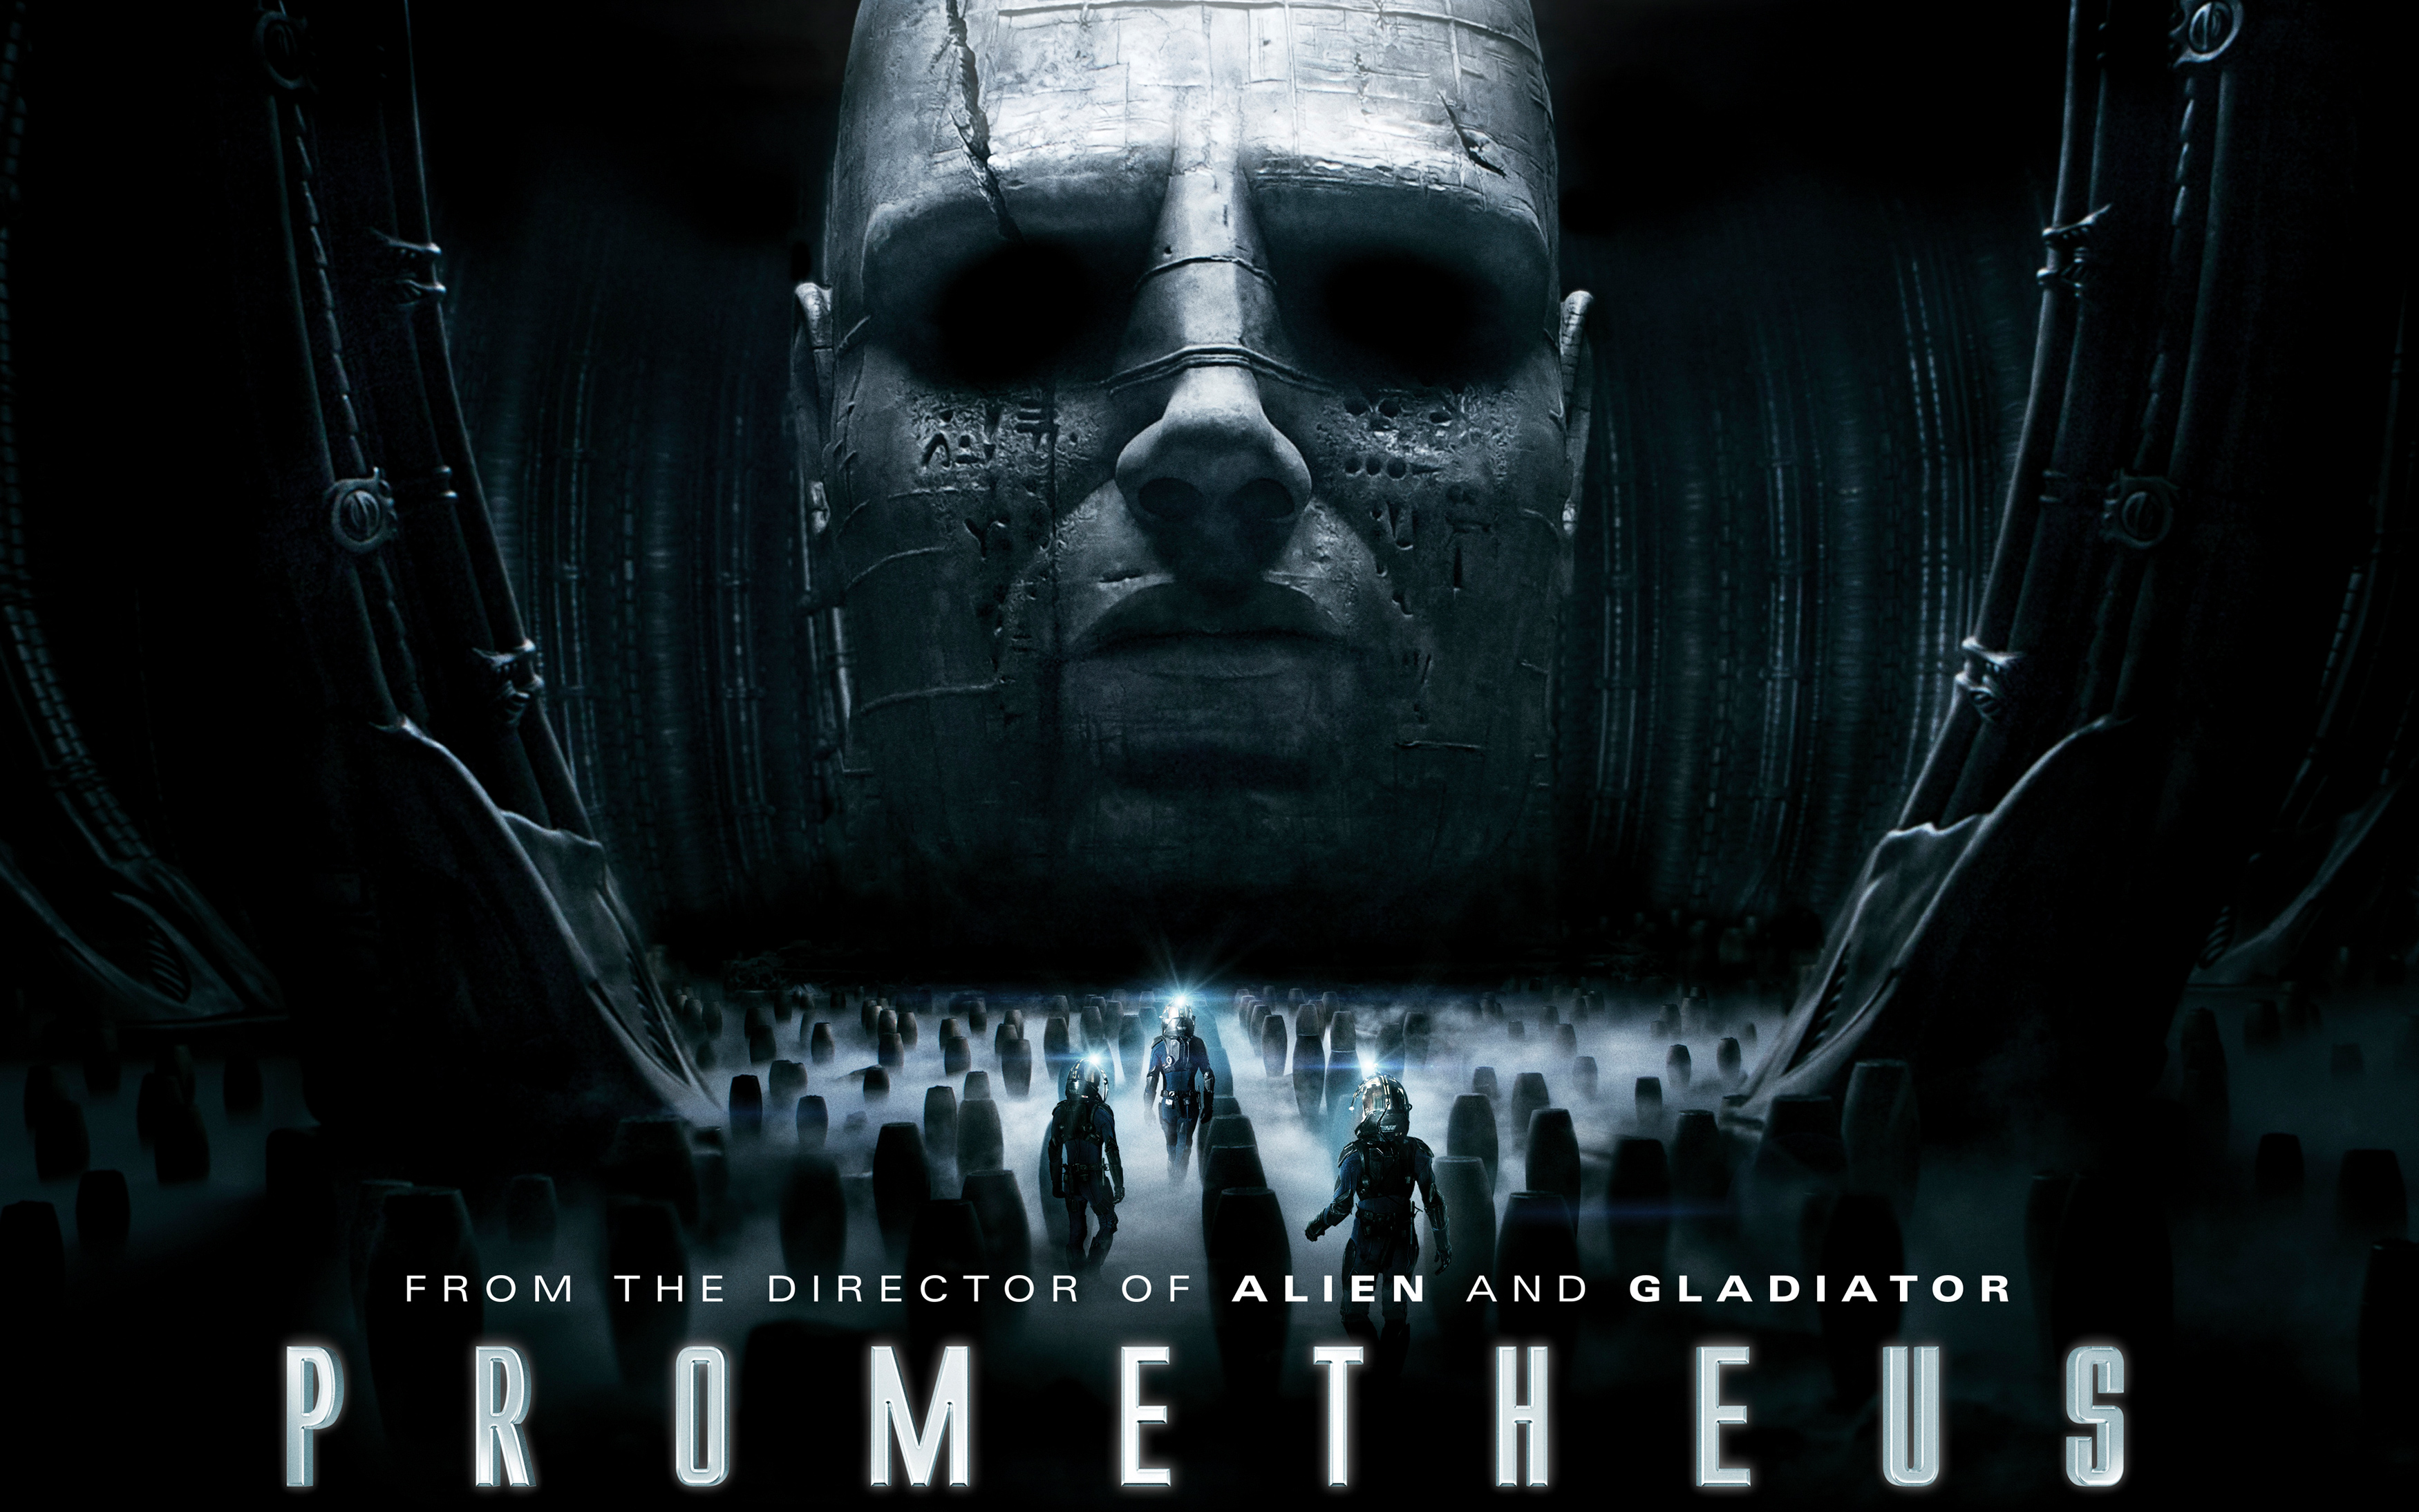 Prometheus Movie Wallpapers HD Wallpapers 3500x2188